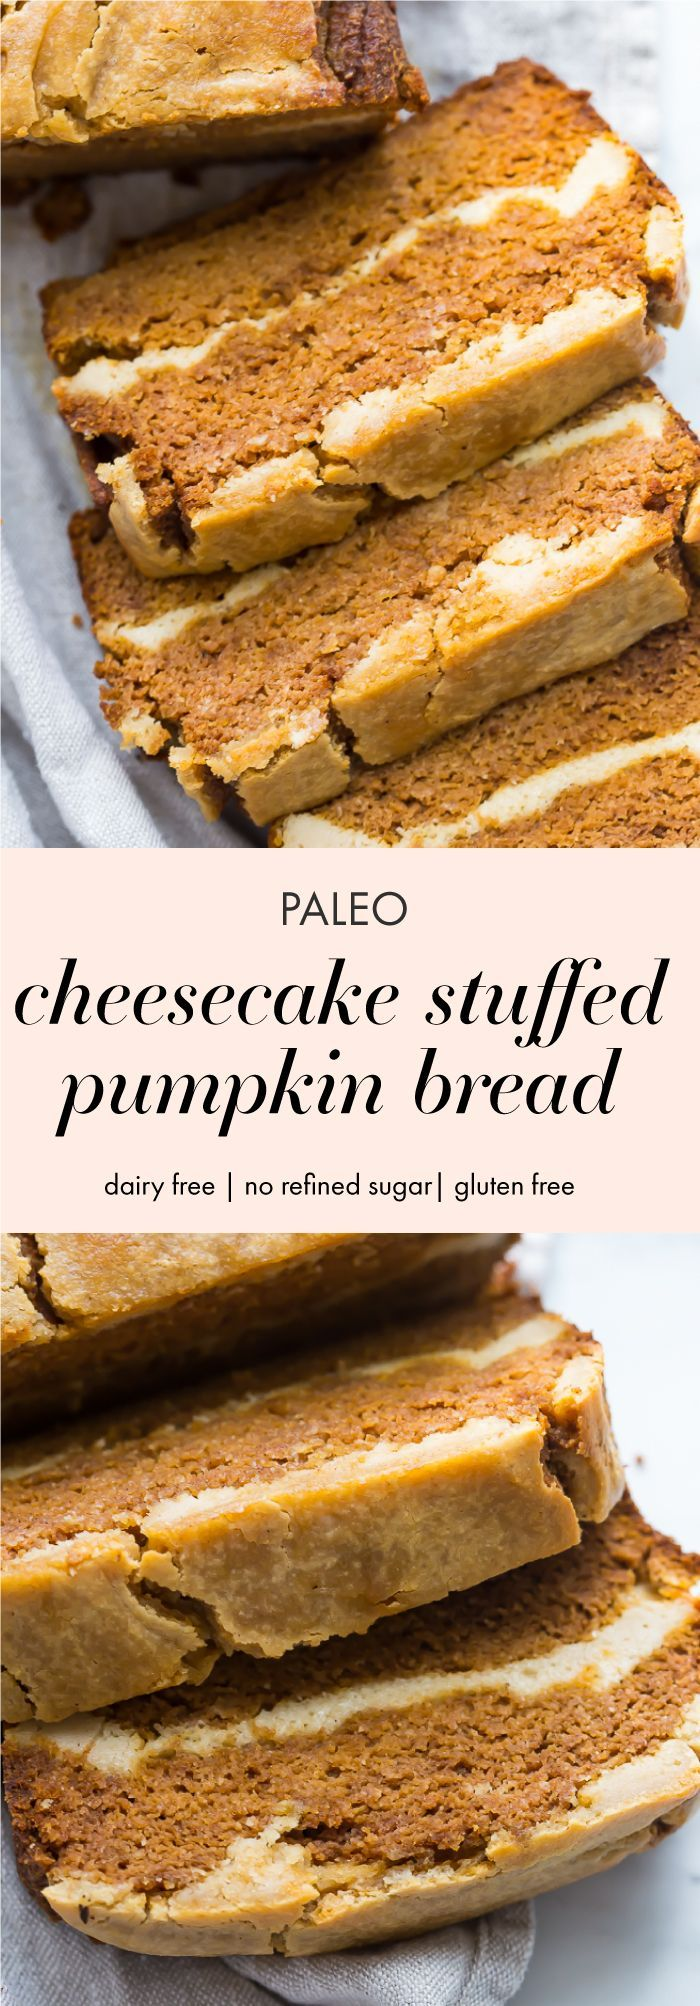 This paleo cheesecake stuffed pumpkin bread is a tender and spiced paleo pumpkin bread, layered with a sweet, dairy-free cream cheese filling. One of my very favorite paleo fall recipes, this paleo cheesecake stuffed pumpkin bread is an absolute must-make this fall! Guarantee it will become one of your favorite paleo fall recipes, too! #pumpkin #fallrecipes #paleo